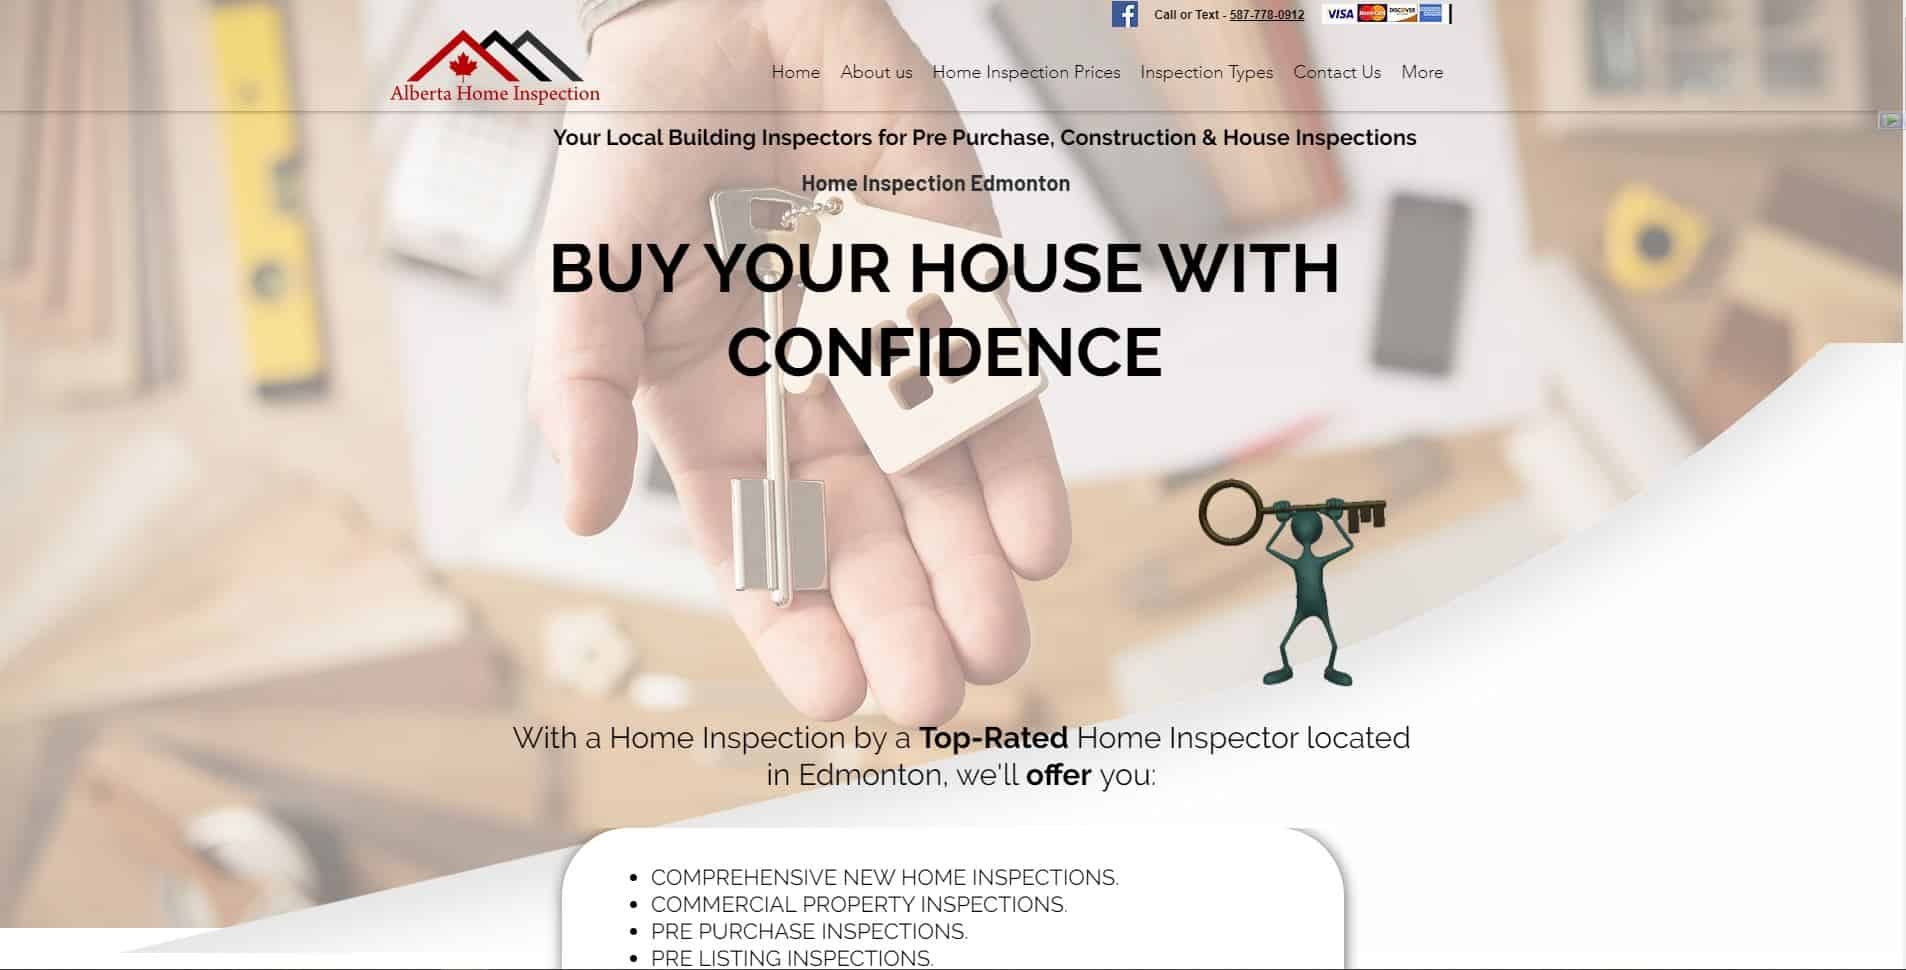 Alberta House Inspection's Homepage